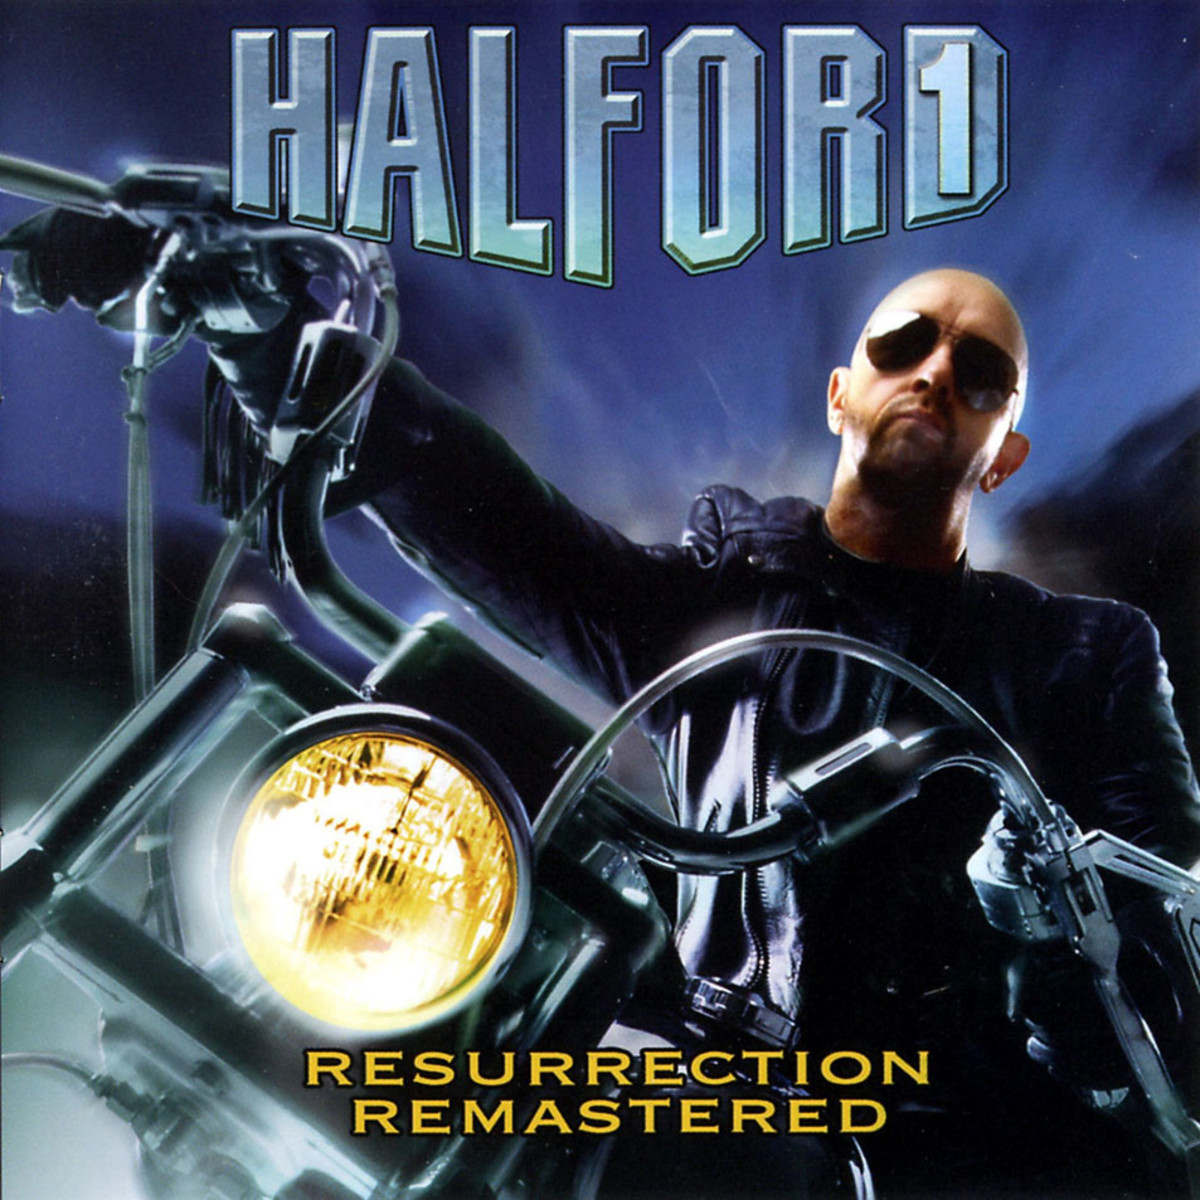 review-of-the-album-resurrection-by-judas-priest-vocalist-rob-halford